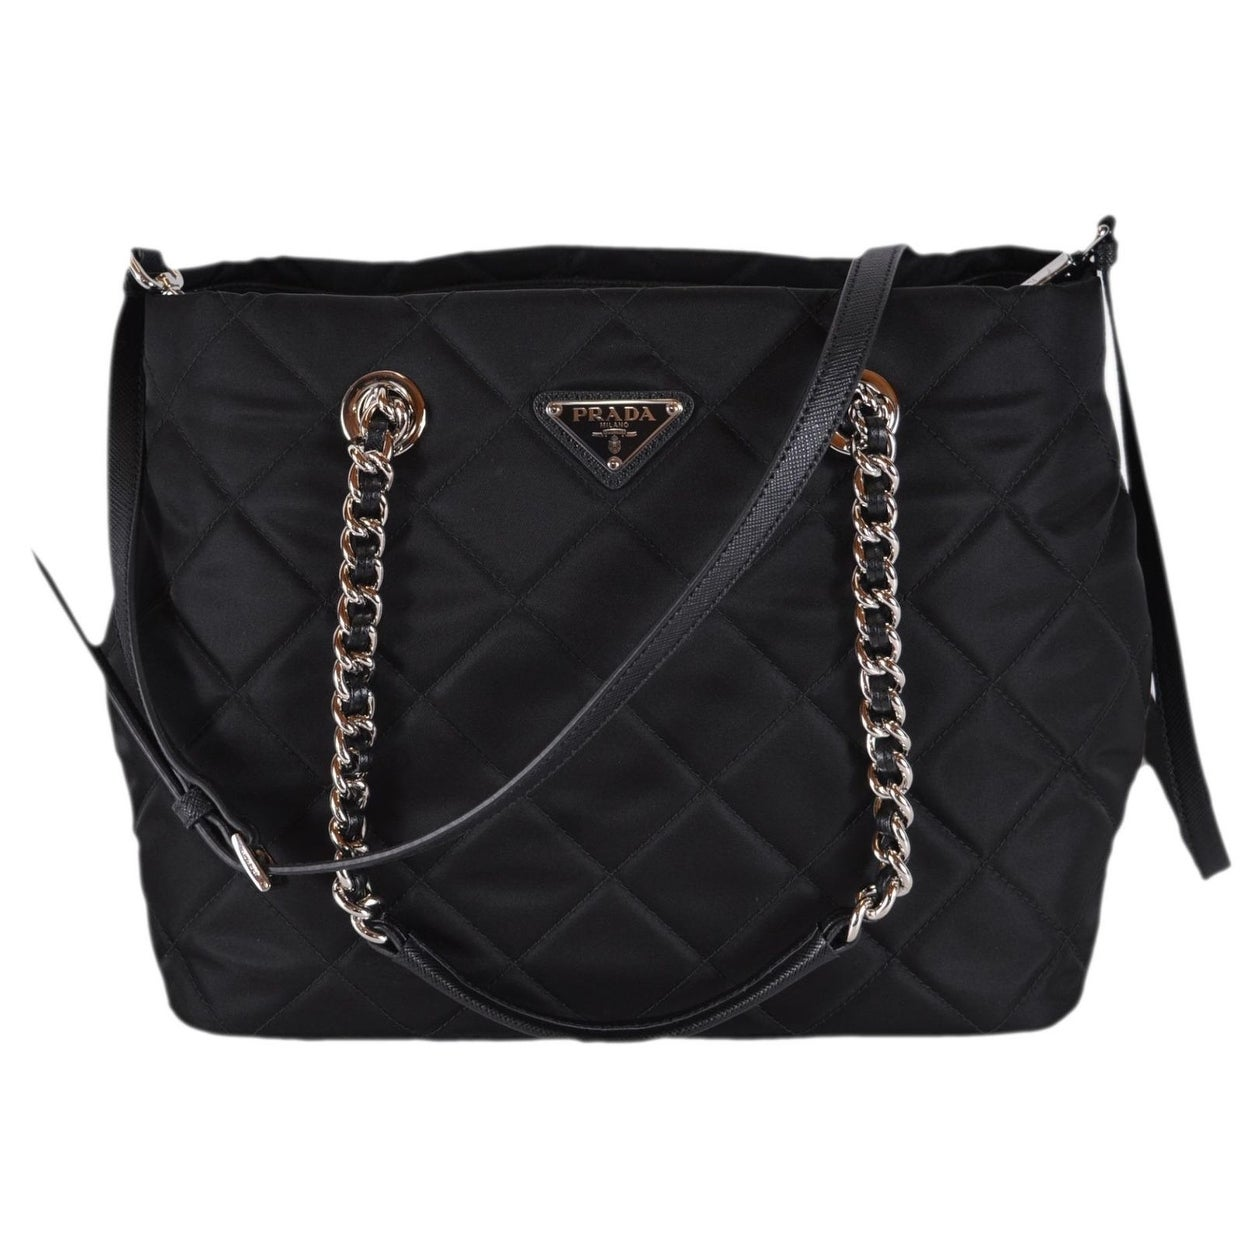 f0ce2cf8d3bfdc Shop Prada 1BG740 Black Tessuto Quilted Nylon Chain Strap Crossbody Purse  Tote - Free Shipping Today - Overstock - 26441071